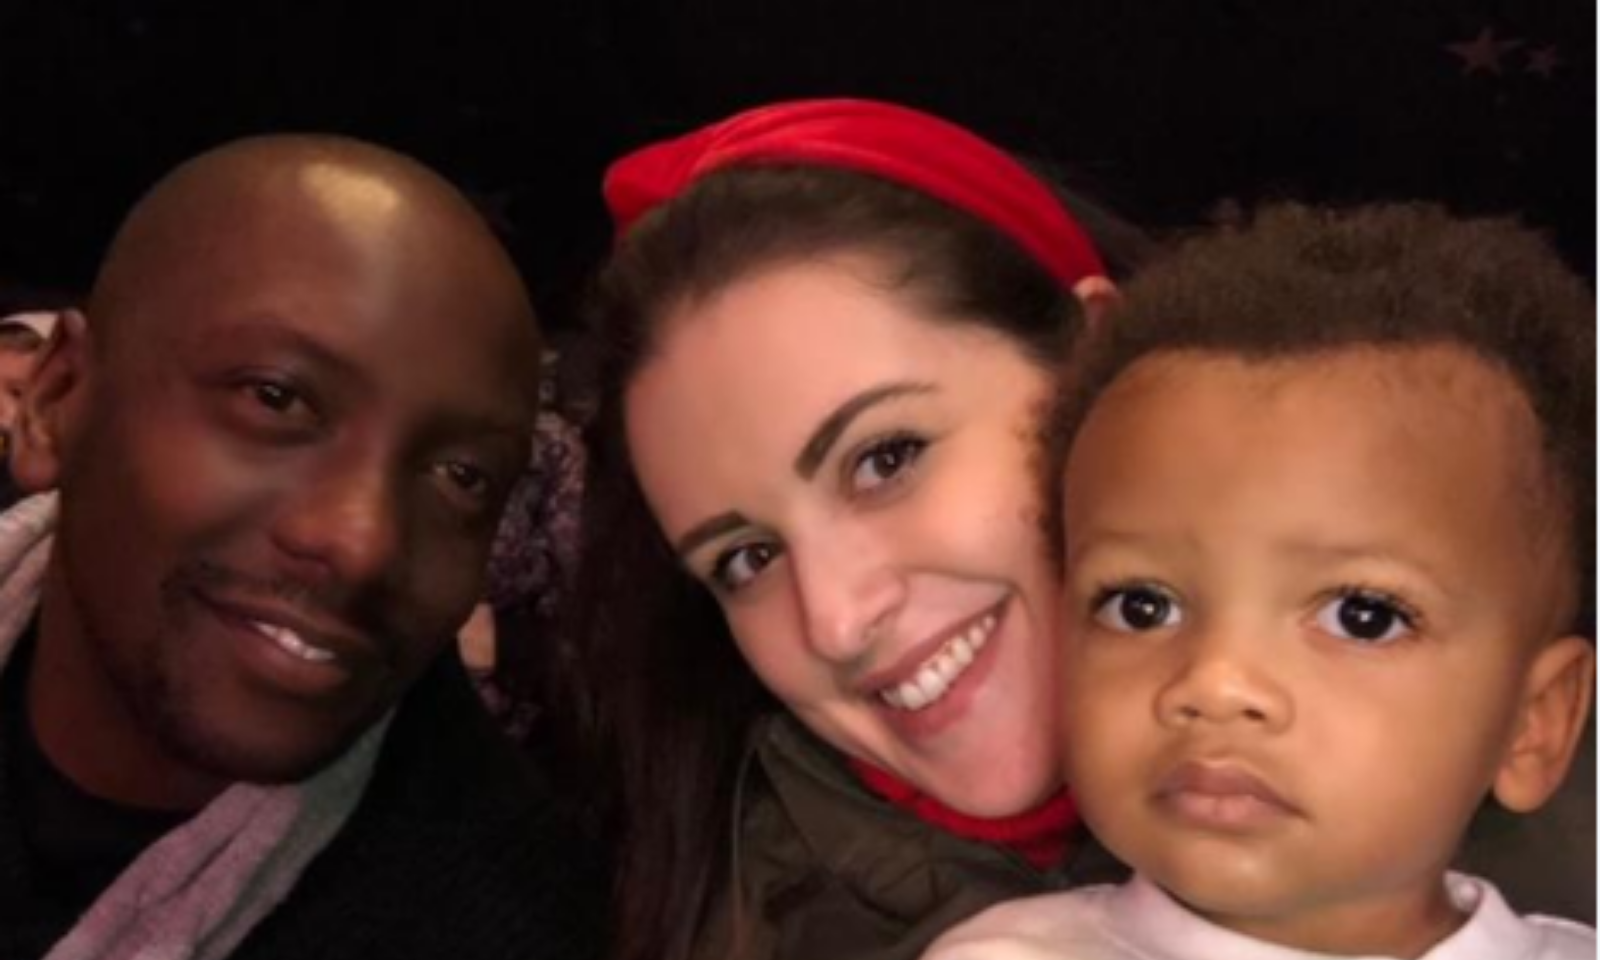 Katy with her husband and son